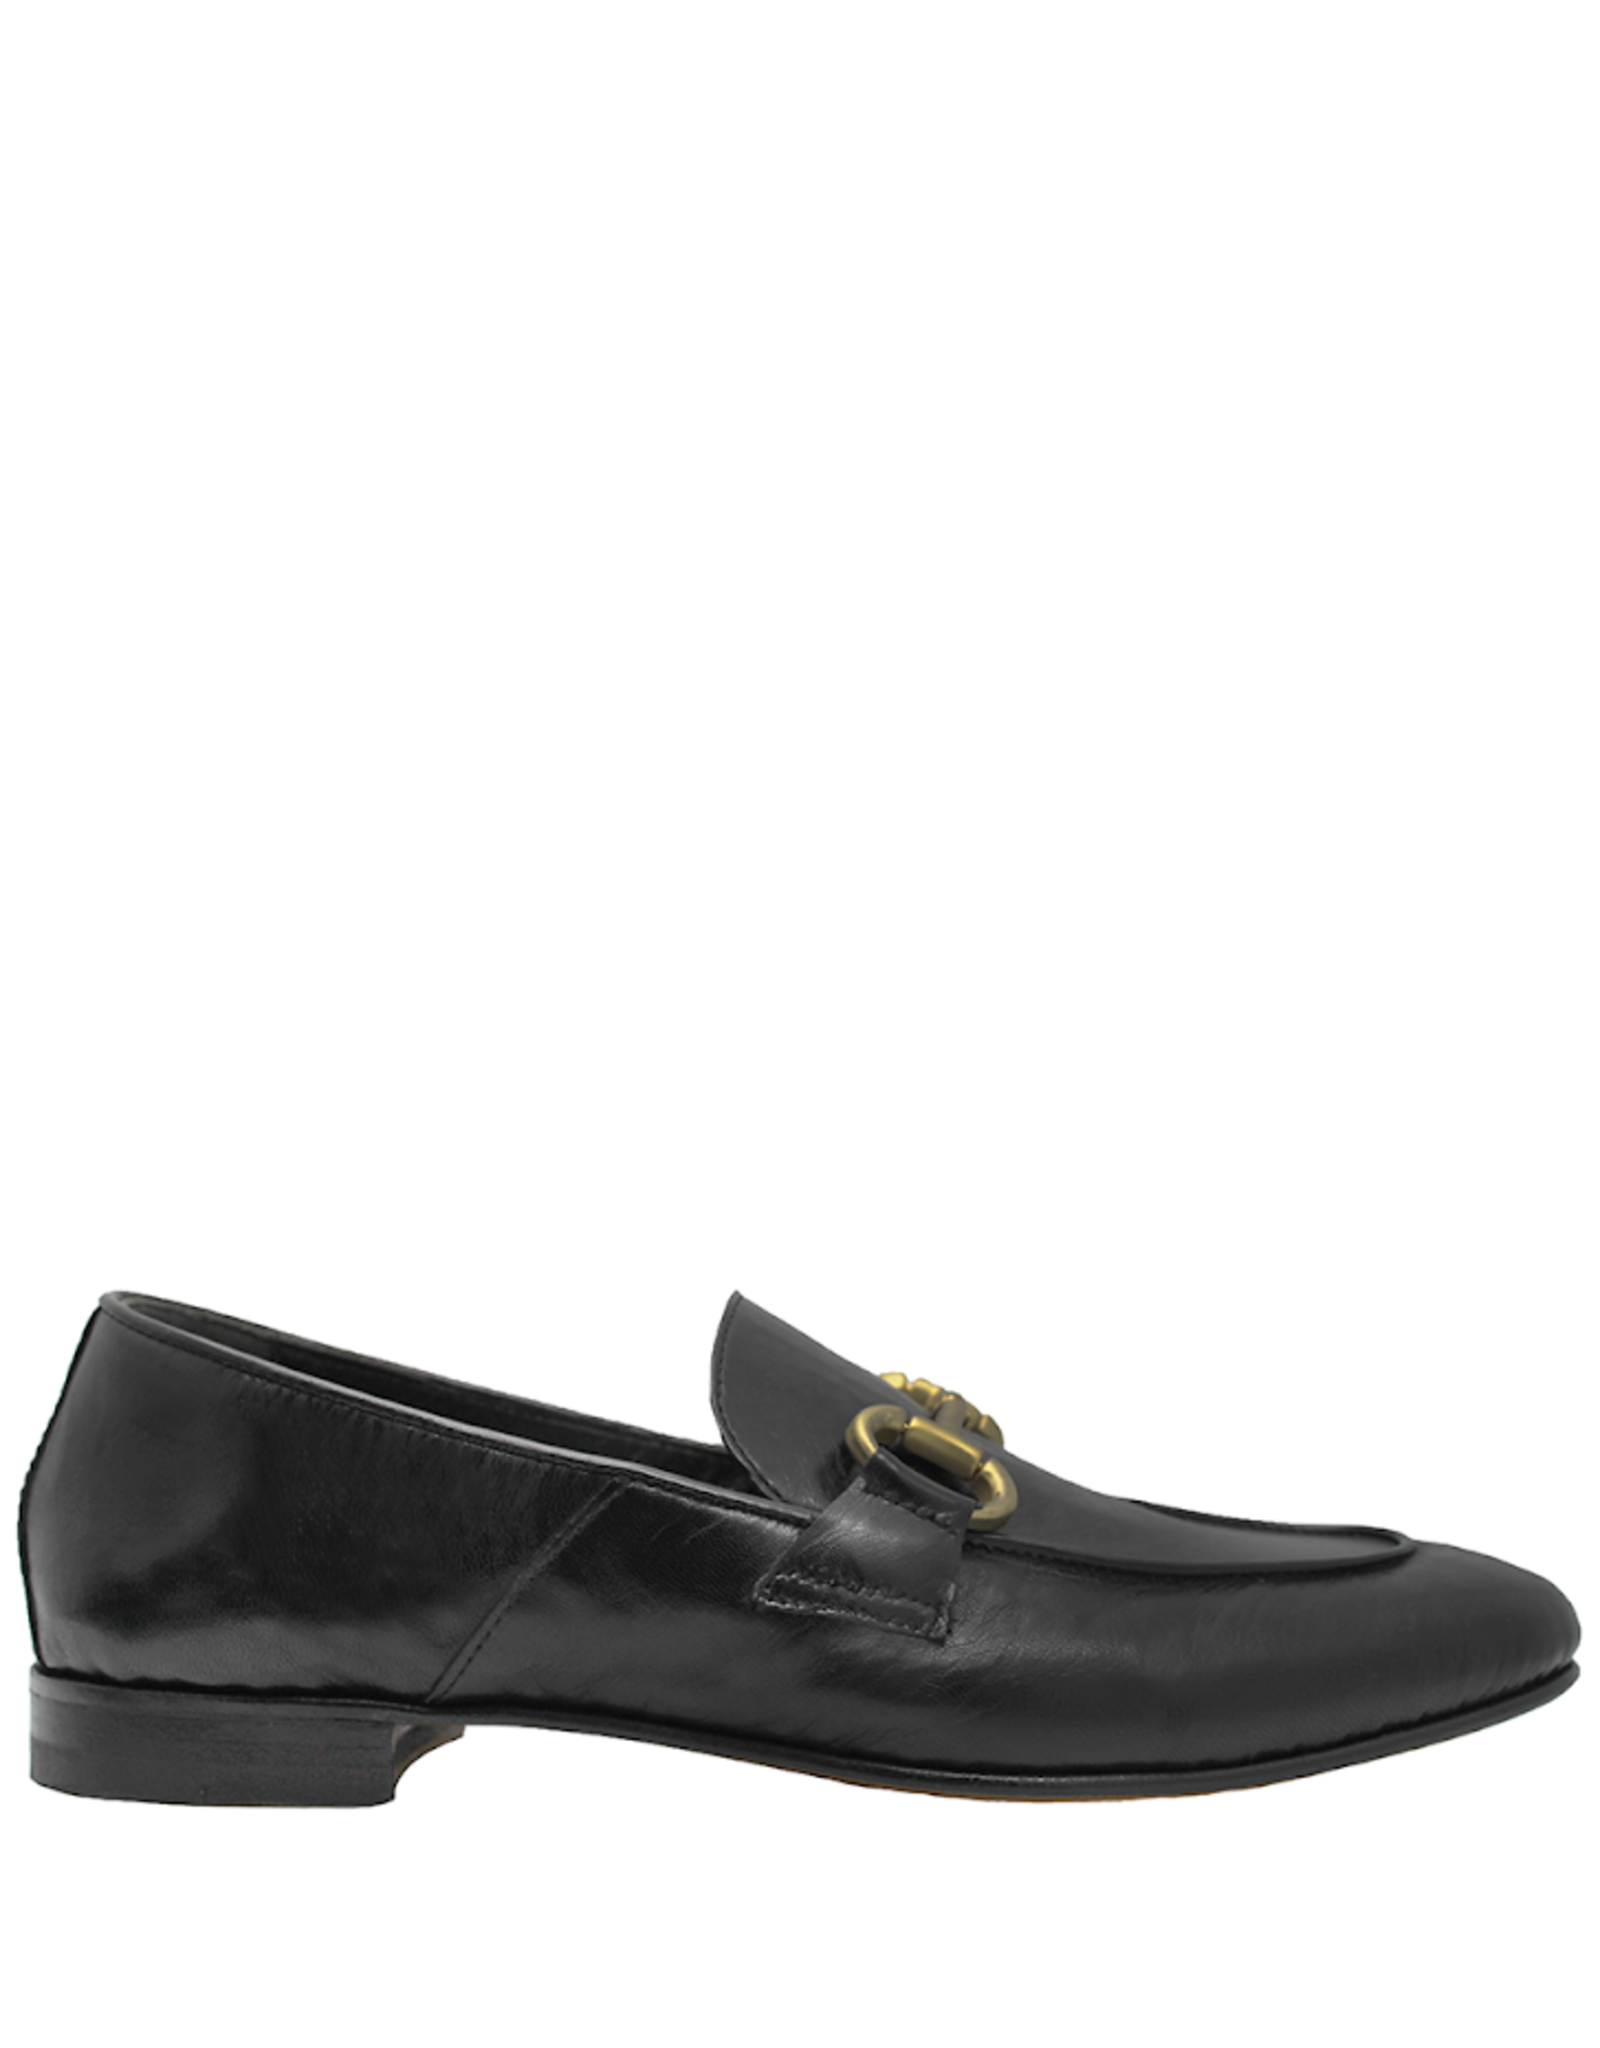 MaraBini MaraBini Black Nappa Flex-Sole Loafer With Gold Bit 7424